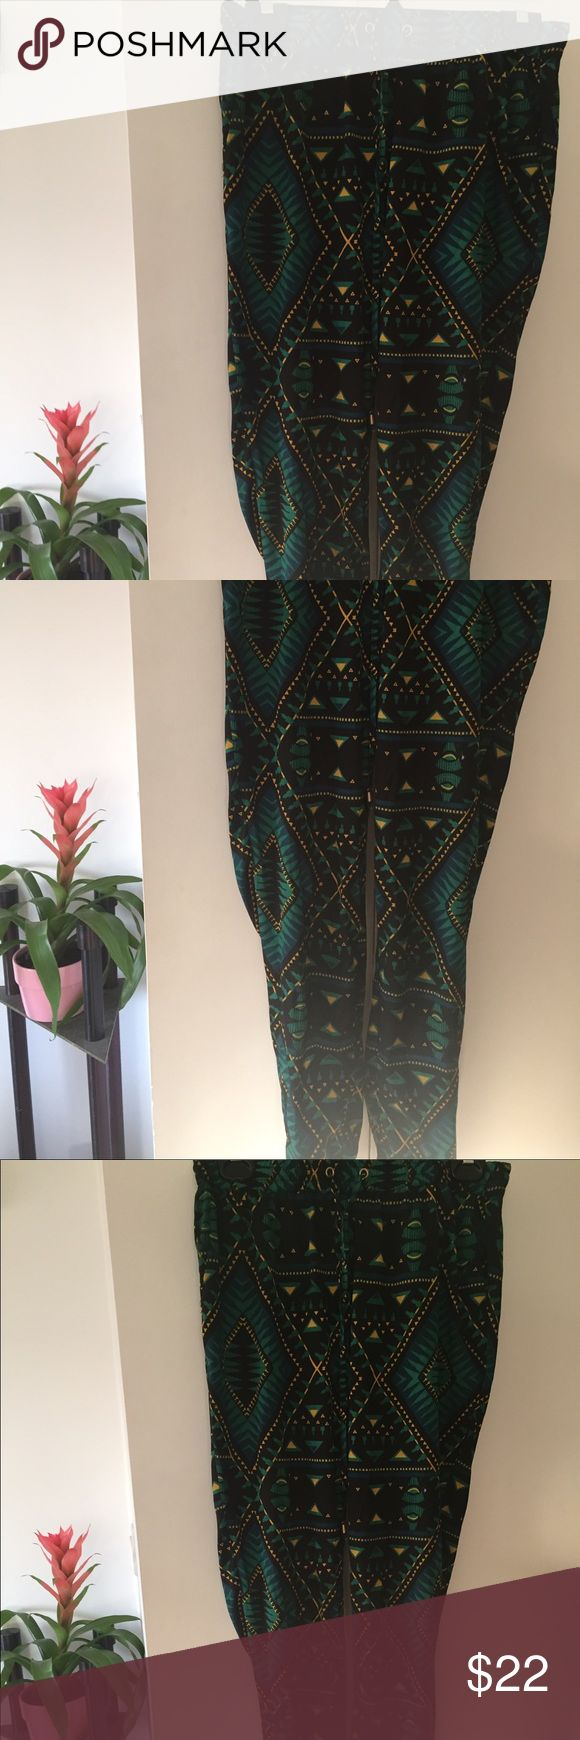 Tribal print pants 💛 Turquoise, green, yellow tribal print pants. Loose fit, tightens at ankle. Flattering fit, super comfy and cute! Your new favorite pair! 🌴 OR BEST OFFER 🌴 Stradivarius Pants